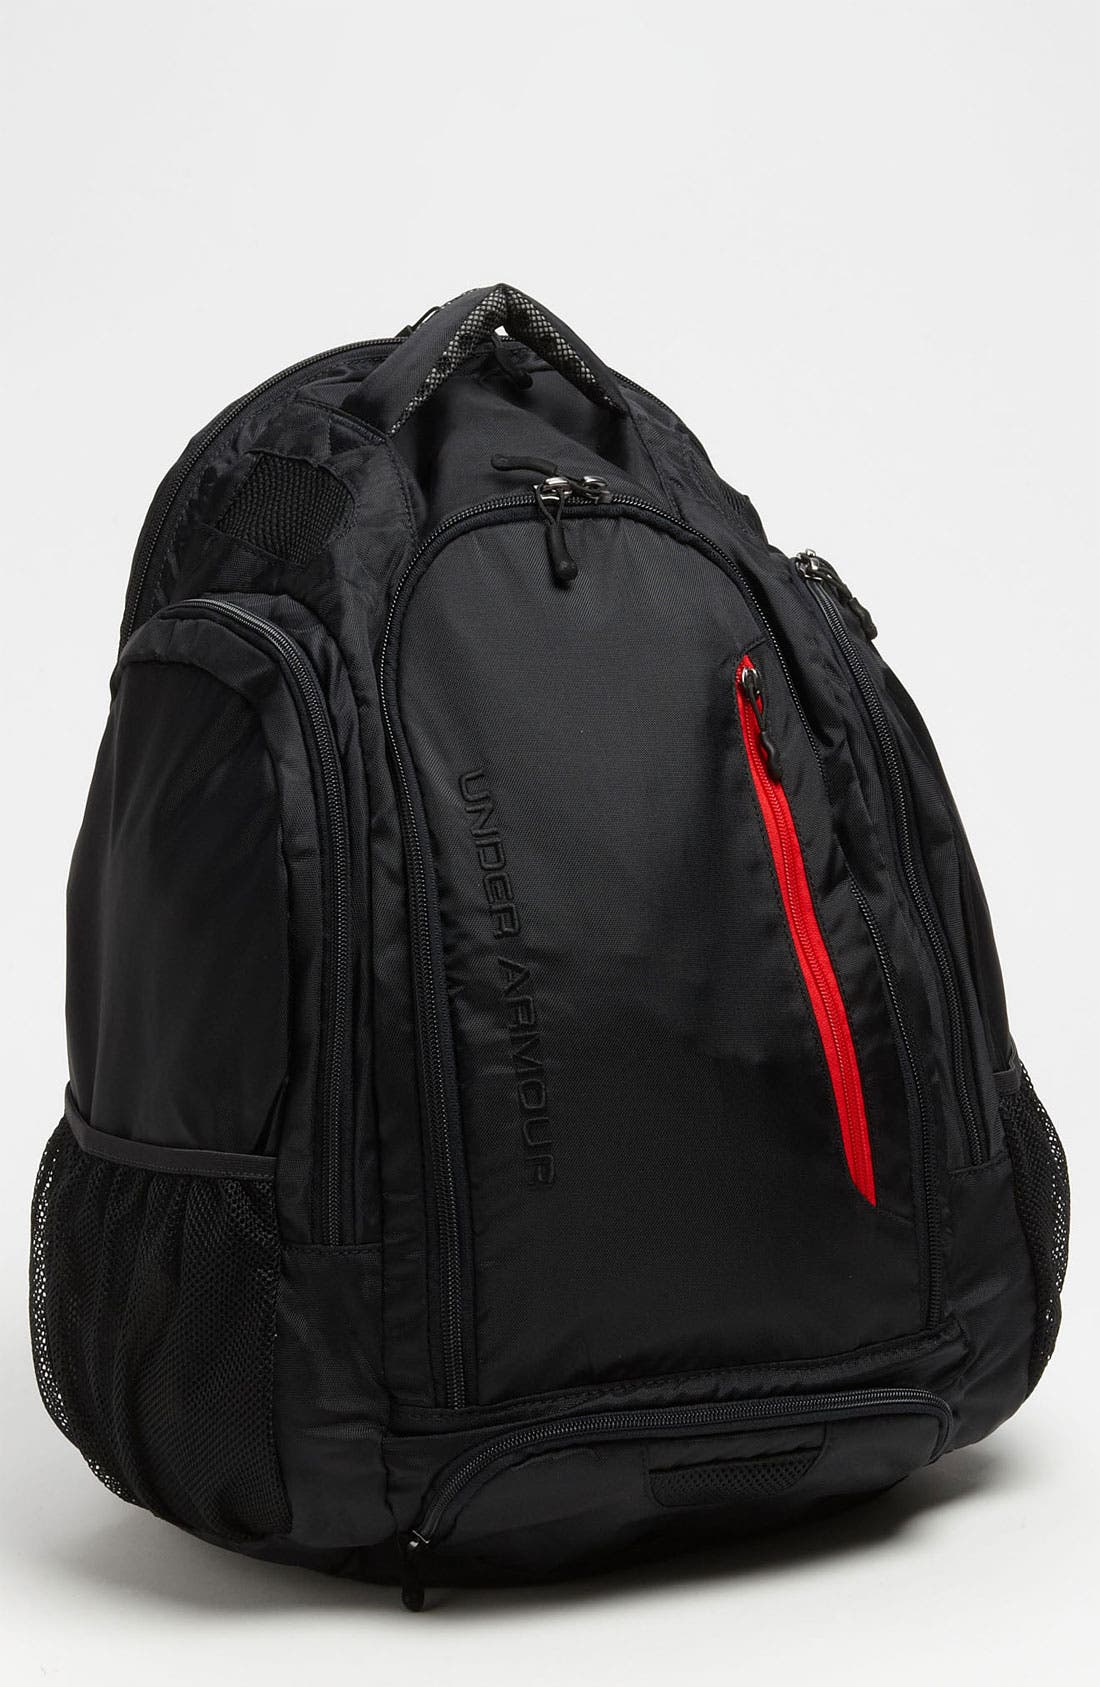 Main Image - Under Armour 'Innovate' Backpack